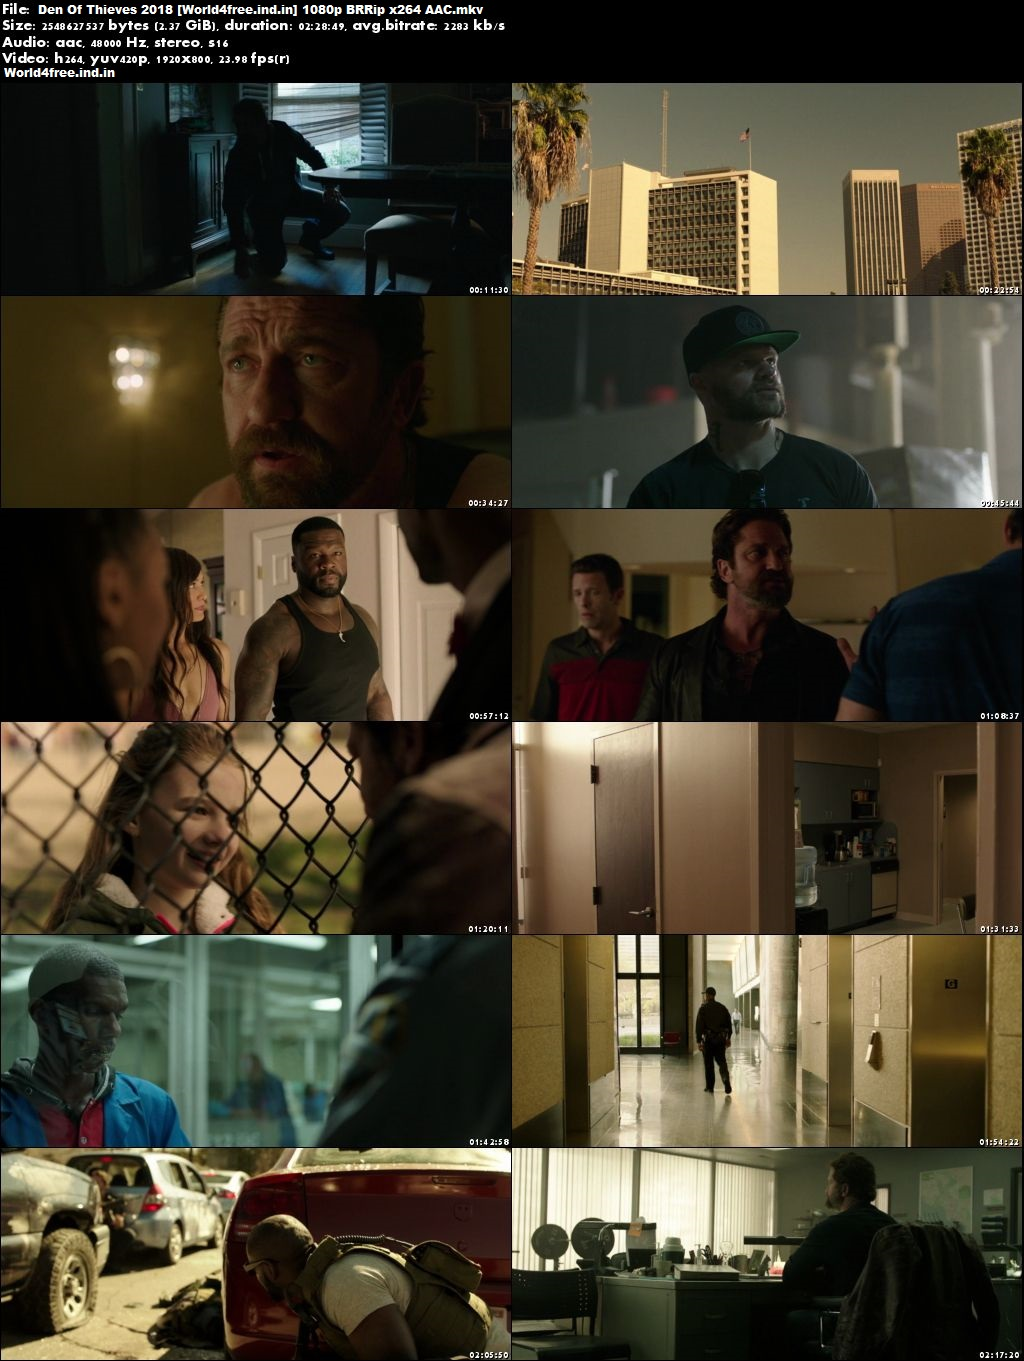 Den Of Thieves 2018 world4free.ind.in Full Hollywood BRRip 1080p Movie Download